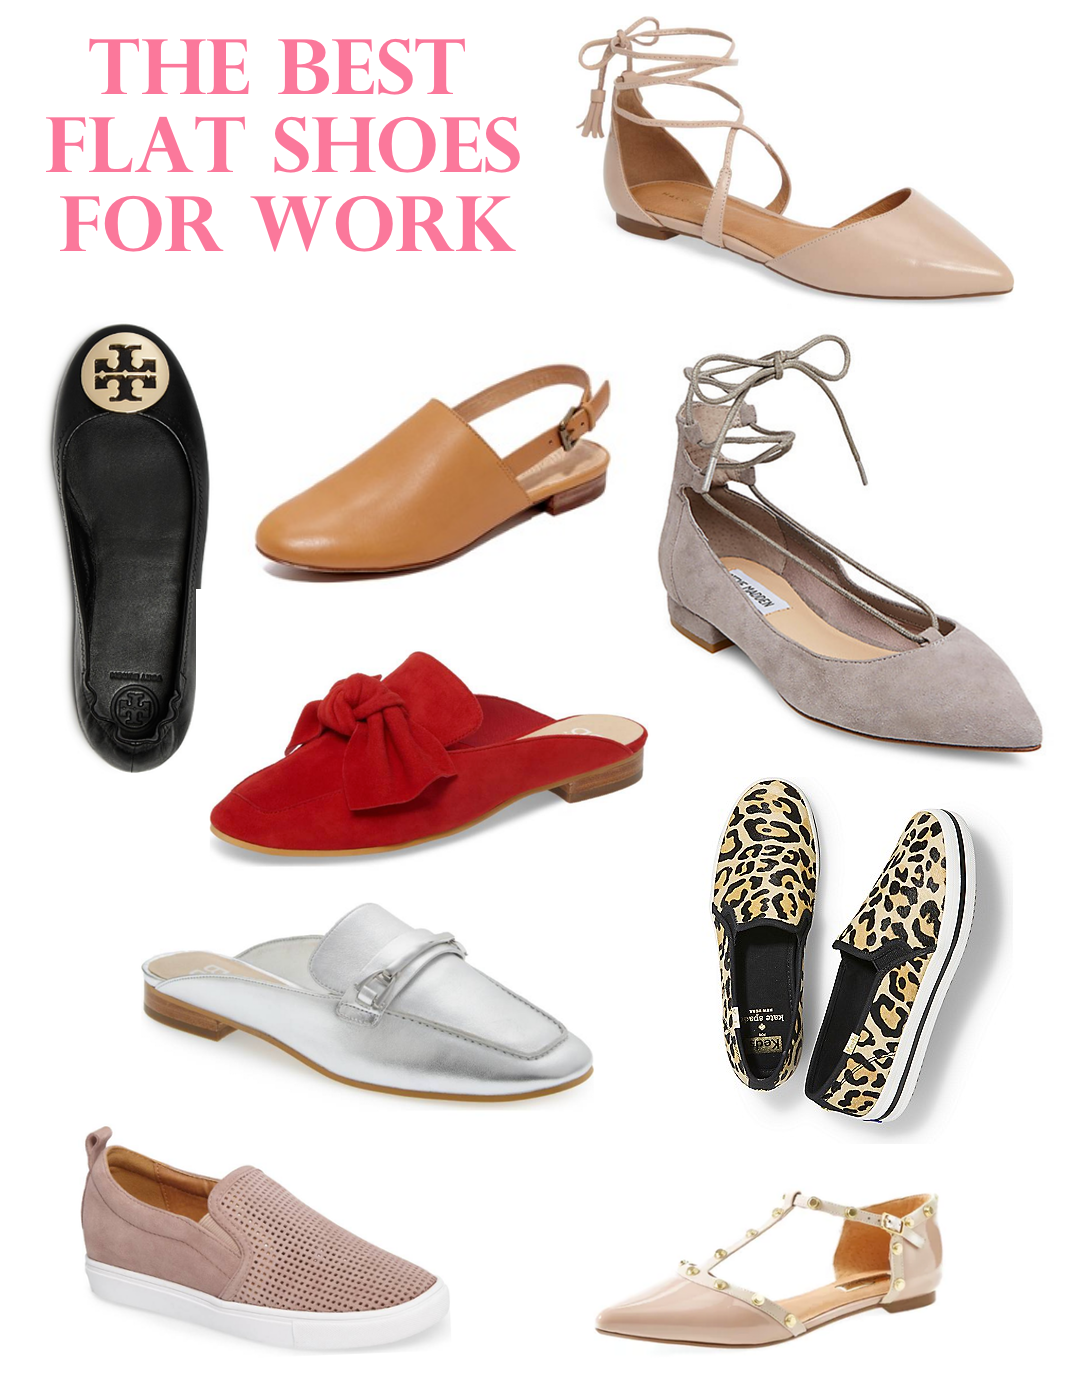 """f8ad5a93c3b3 I'm 5'10"""" so stylish flat shoes are key for me both for work and for fun. I  love wearing heels when I go out with friends or Mark, but prefer flats in  the ..."""